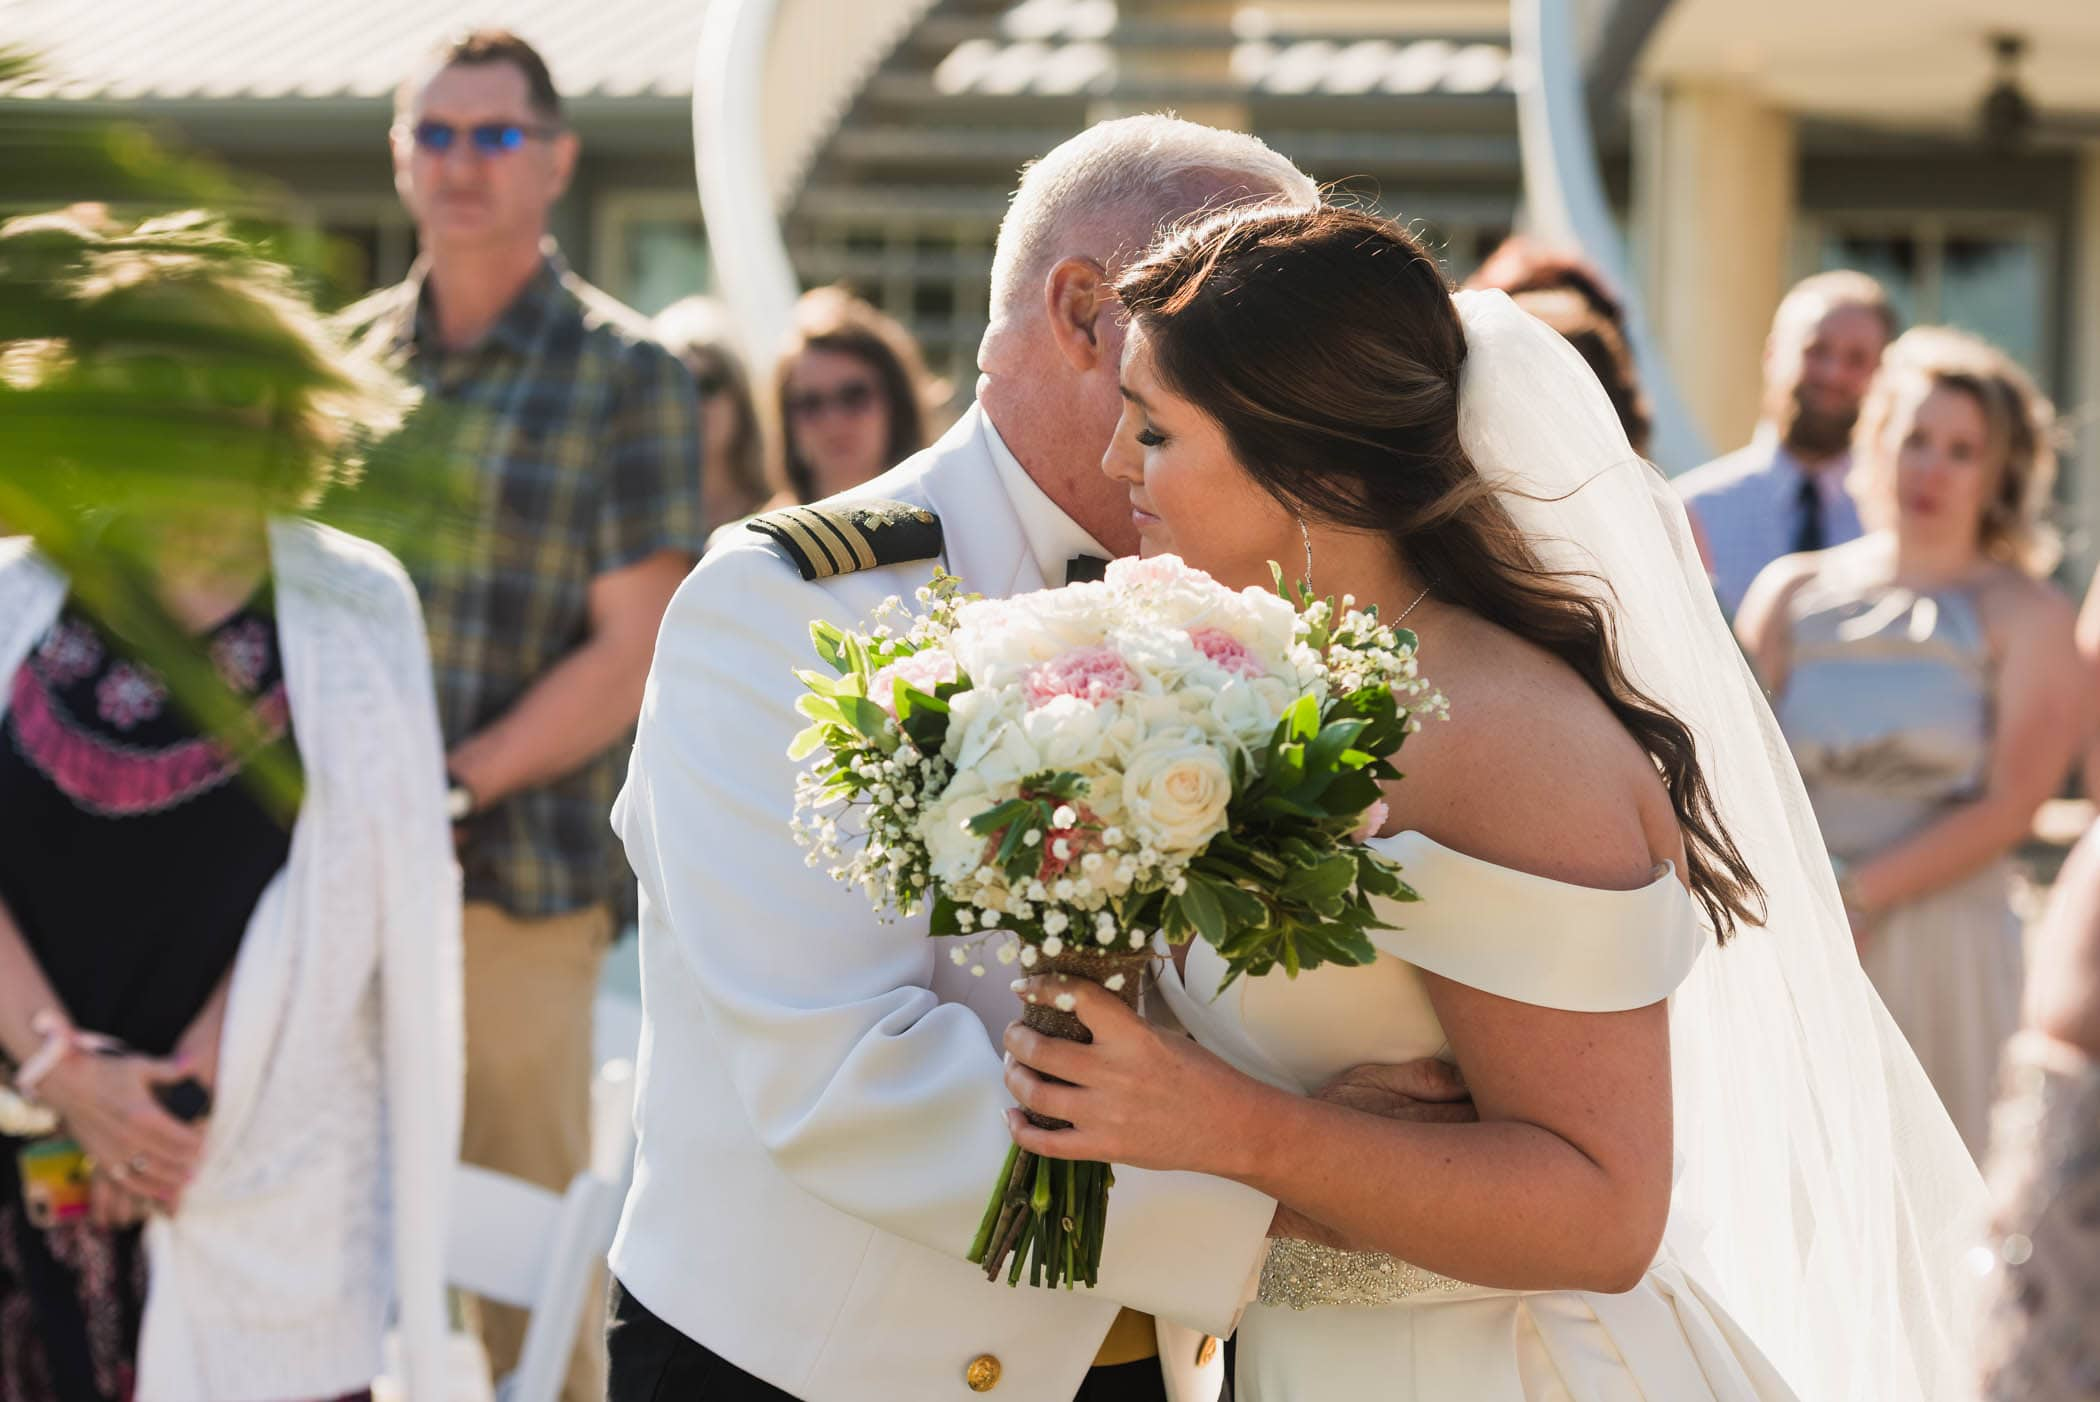 Bride kisses father at the end of the isle during wedding ceremony Dataw Island Club House by Susan DeLoach Photography SC wedding photographers